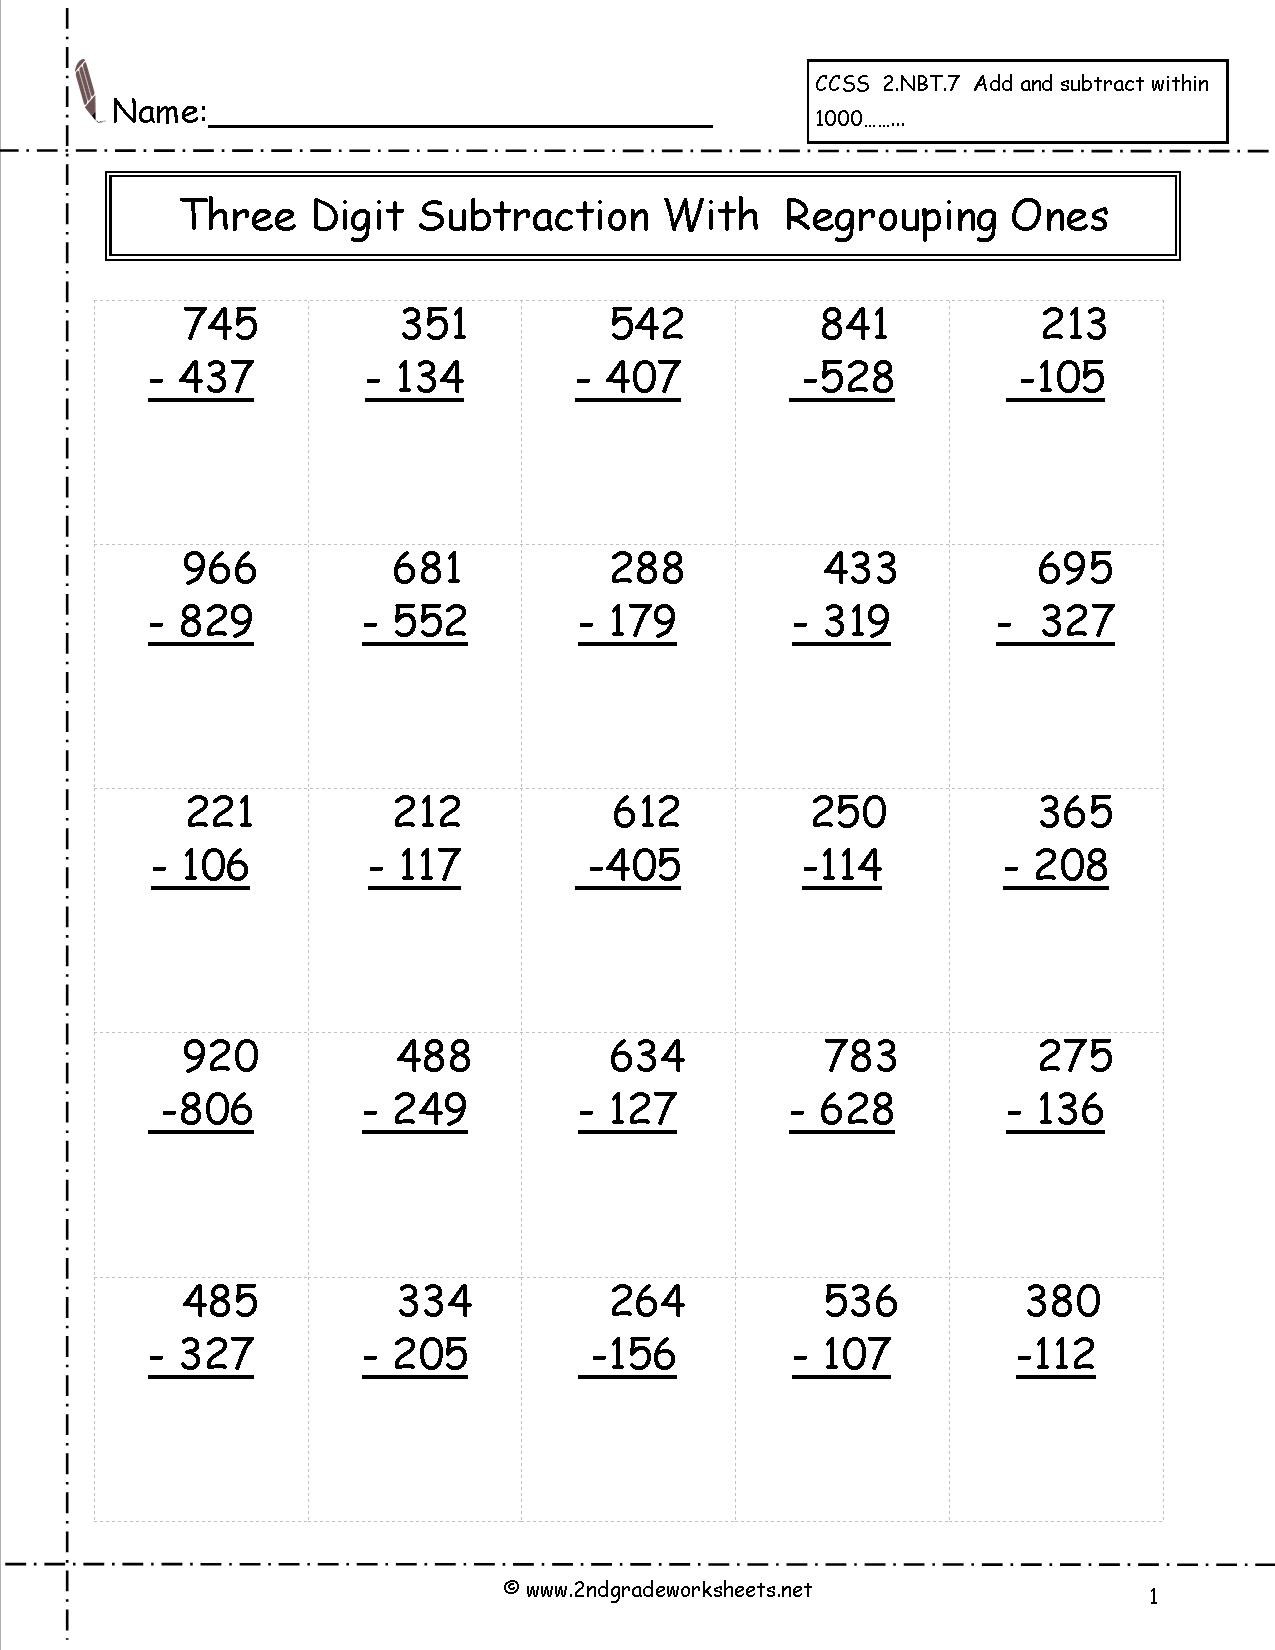 Free Math Worksheets And Printouts | 3Rd Grade Math Subtraction Printable Worksheets